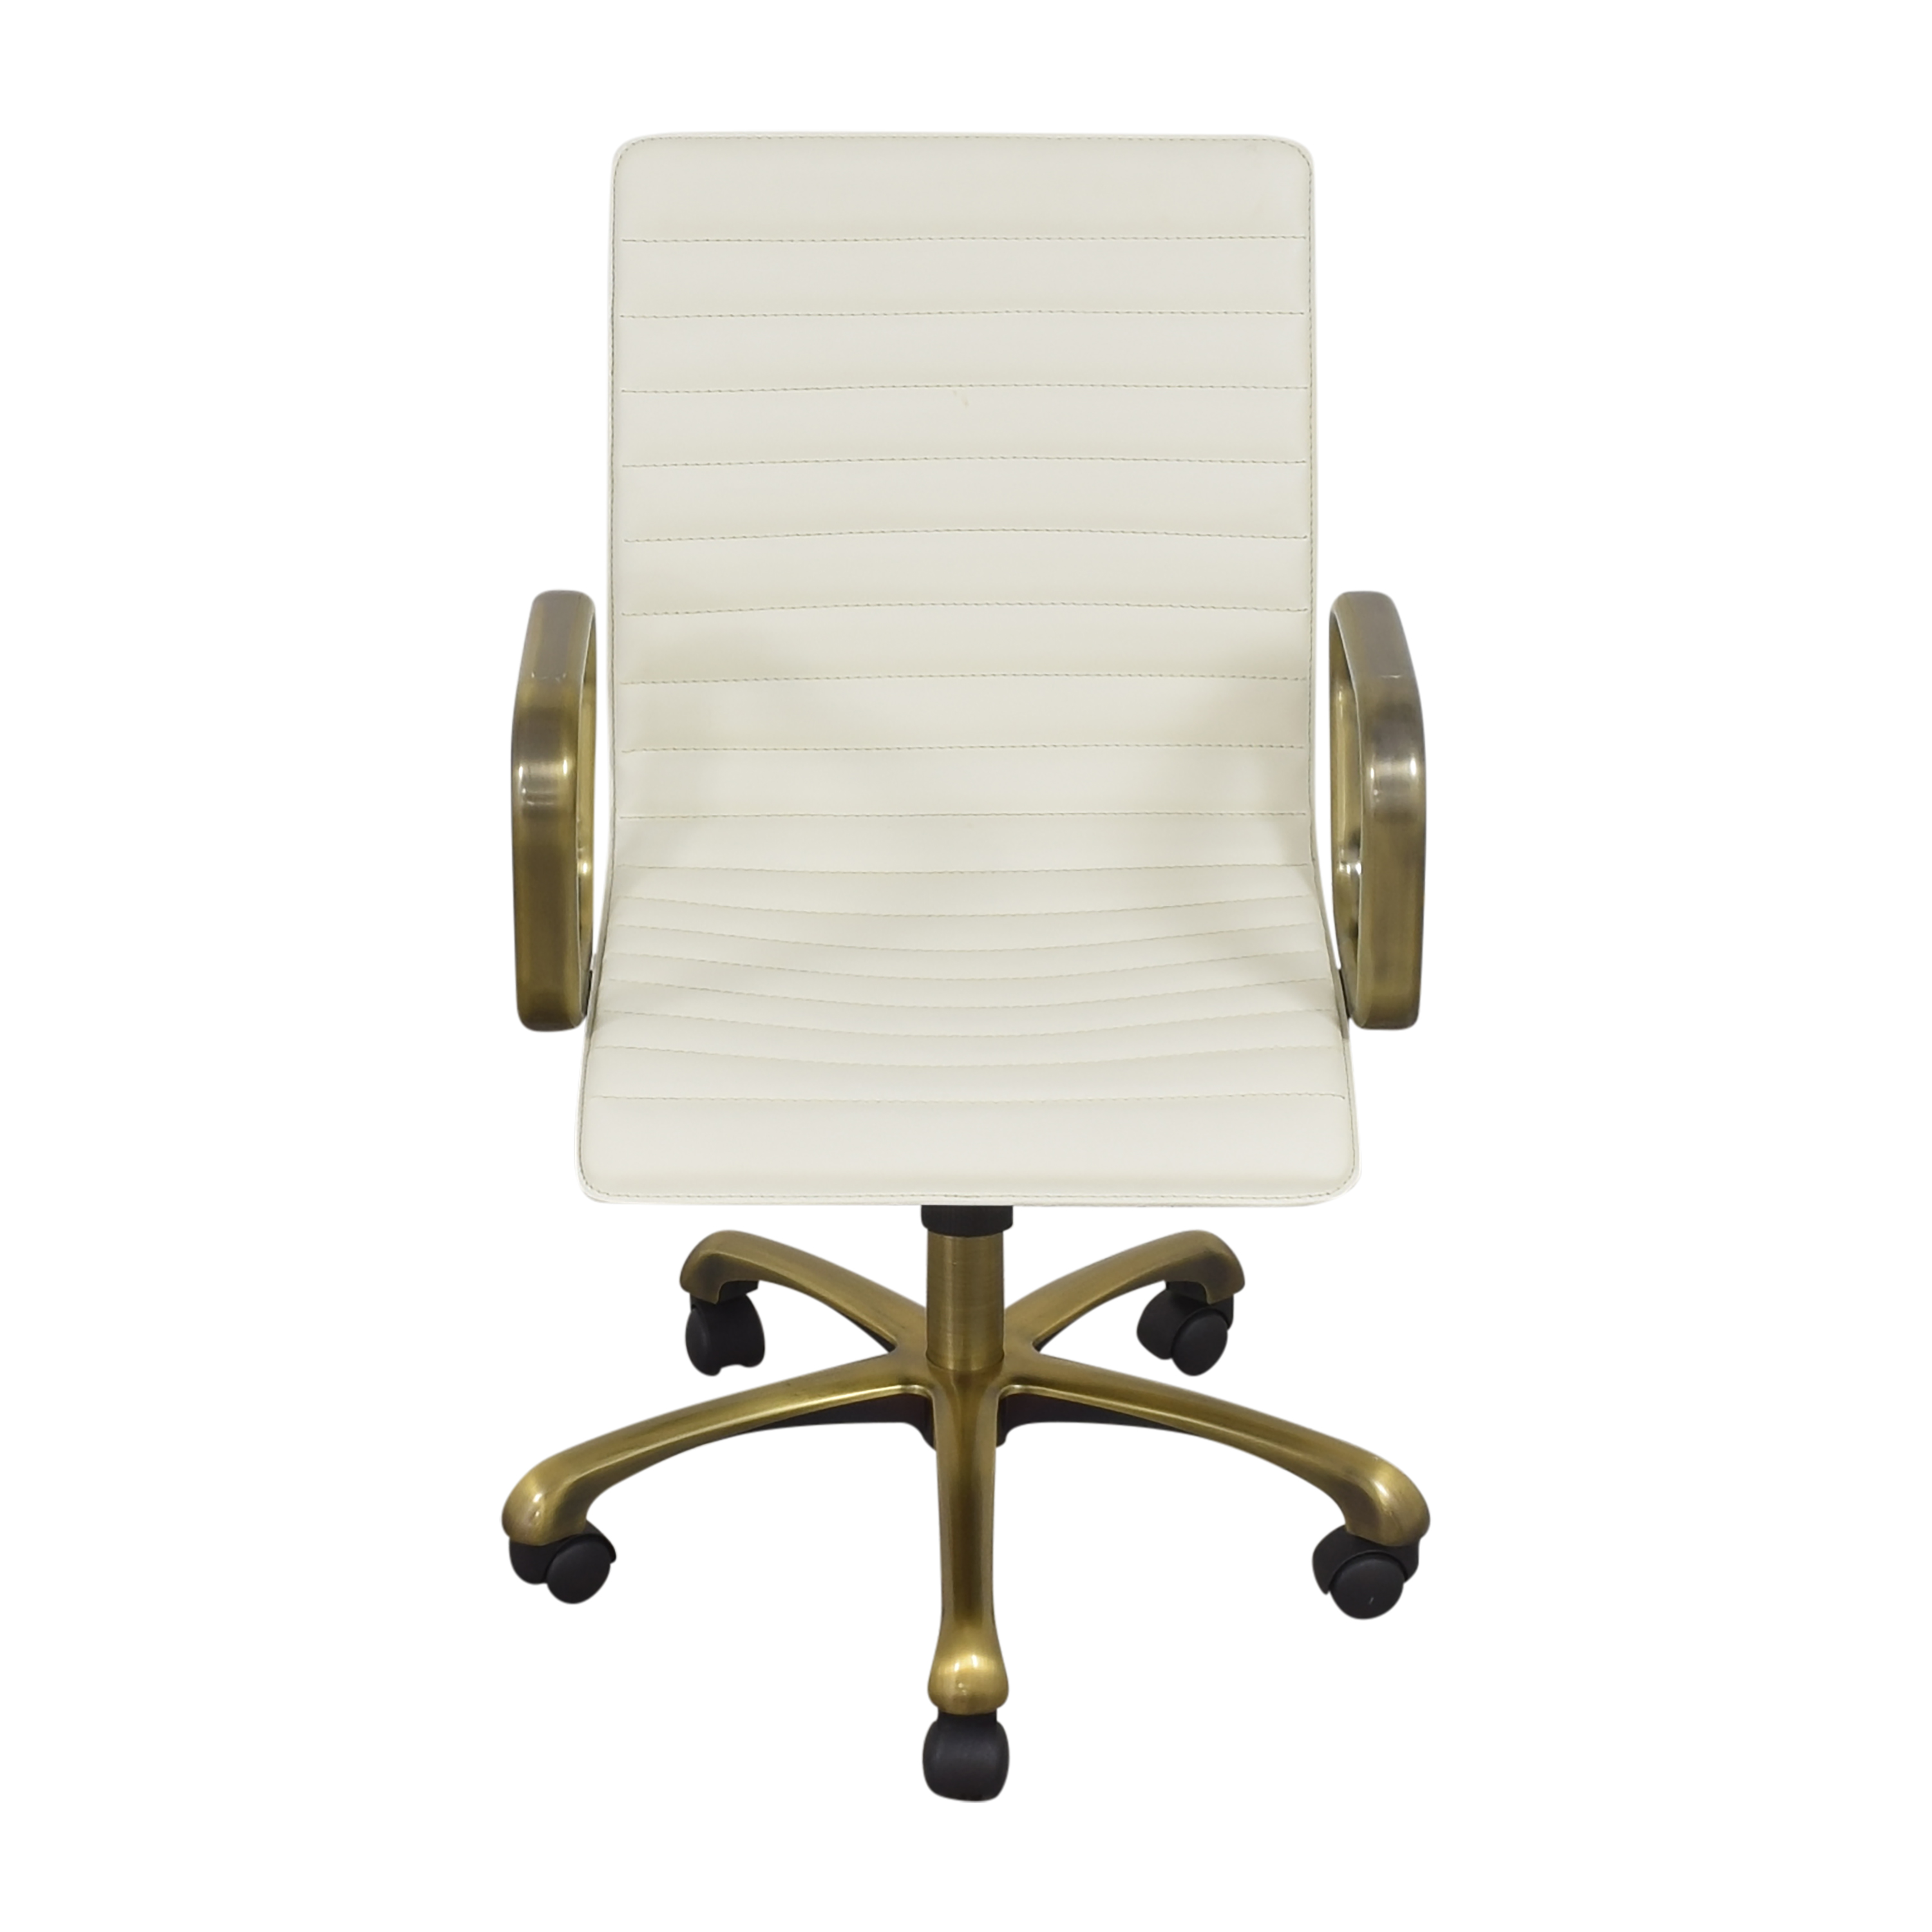 Crate & Barrel Crate & Barrel Ripple Office Chair nyc